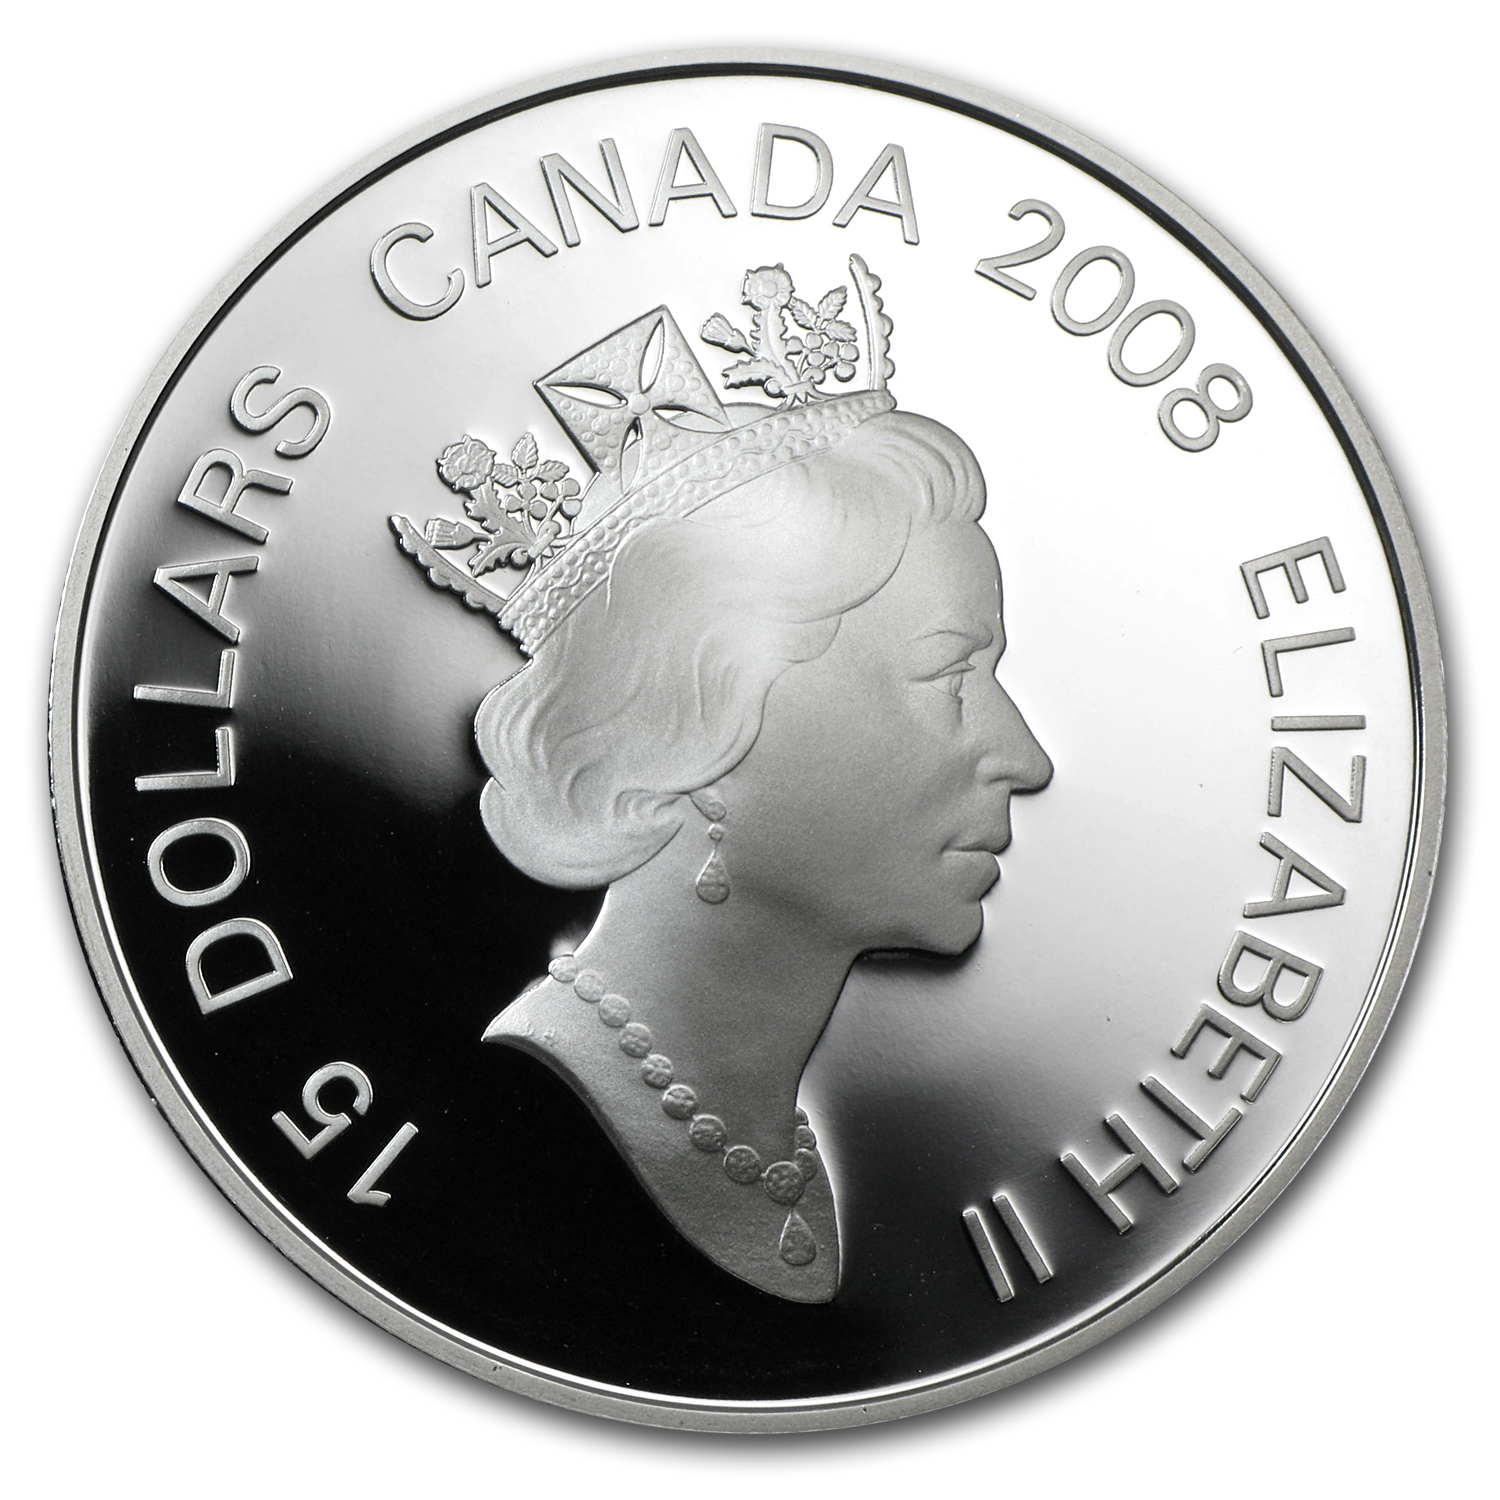 2008 Canada 1 oz Silver $15 Lunar Bimetal RAT Proof (Box & COA)